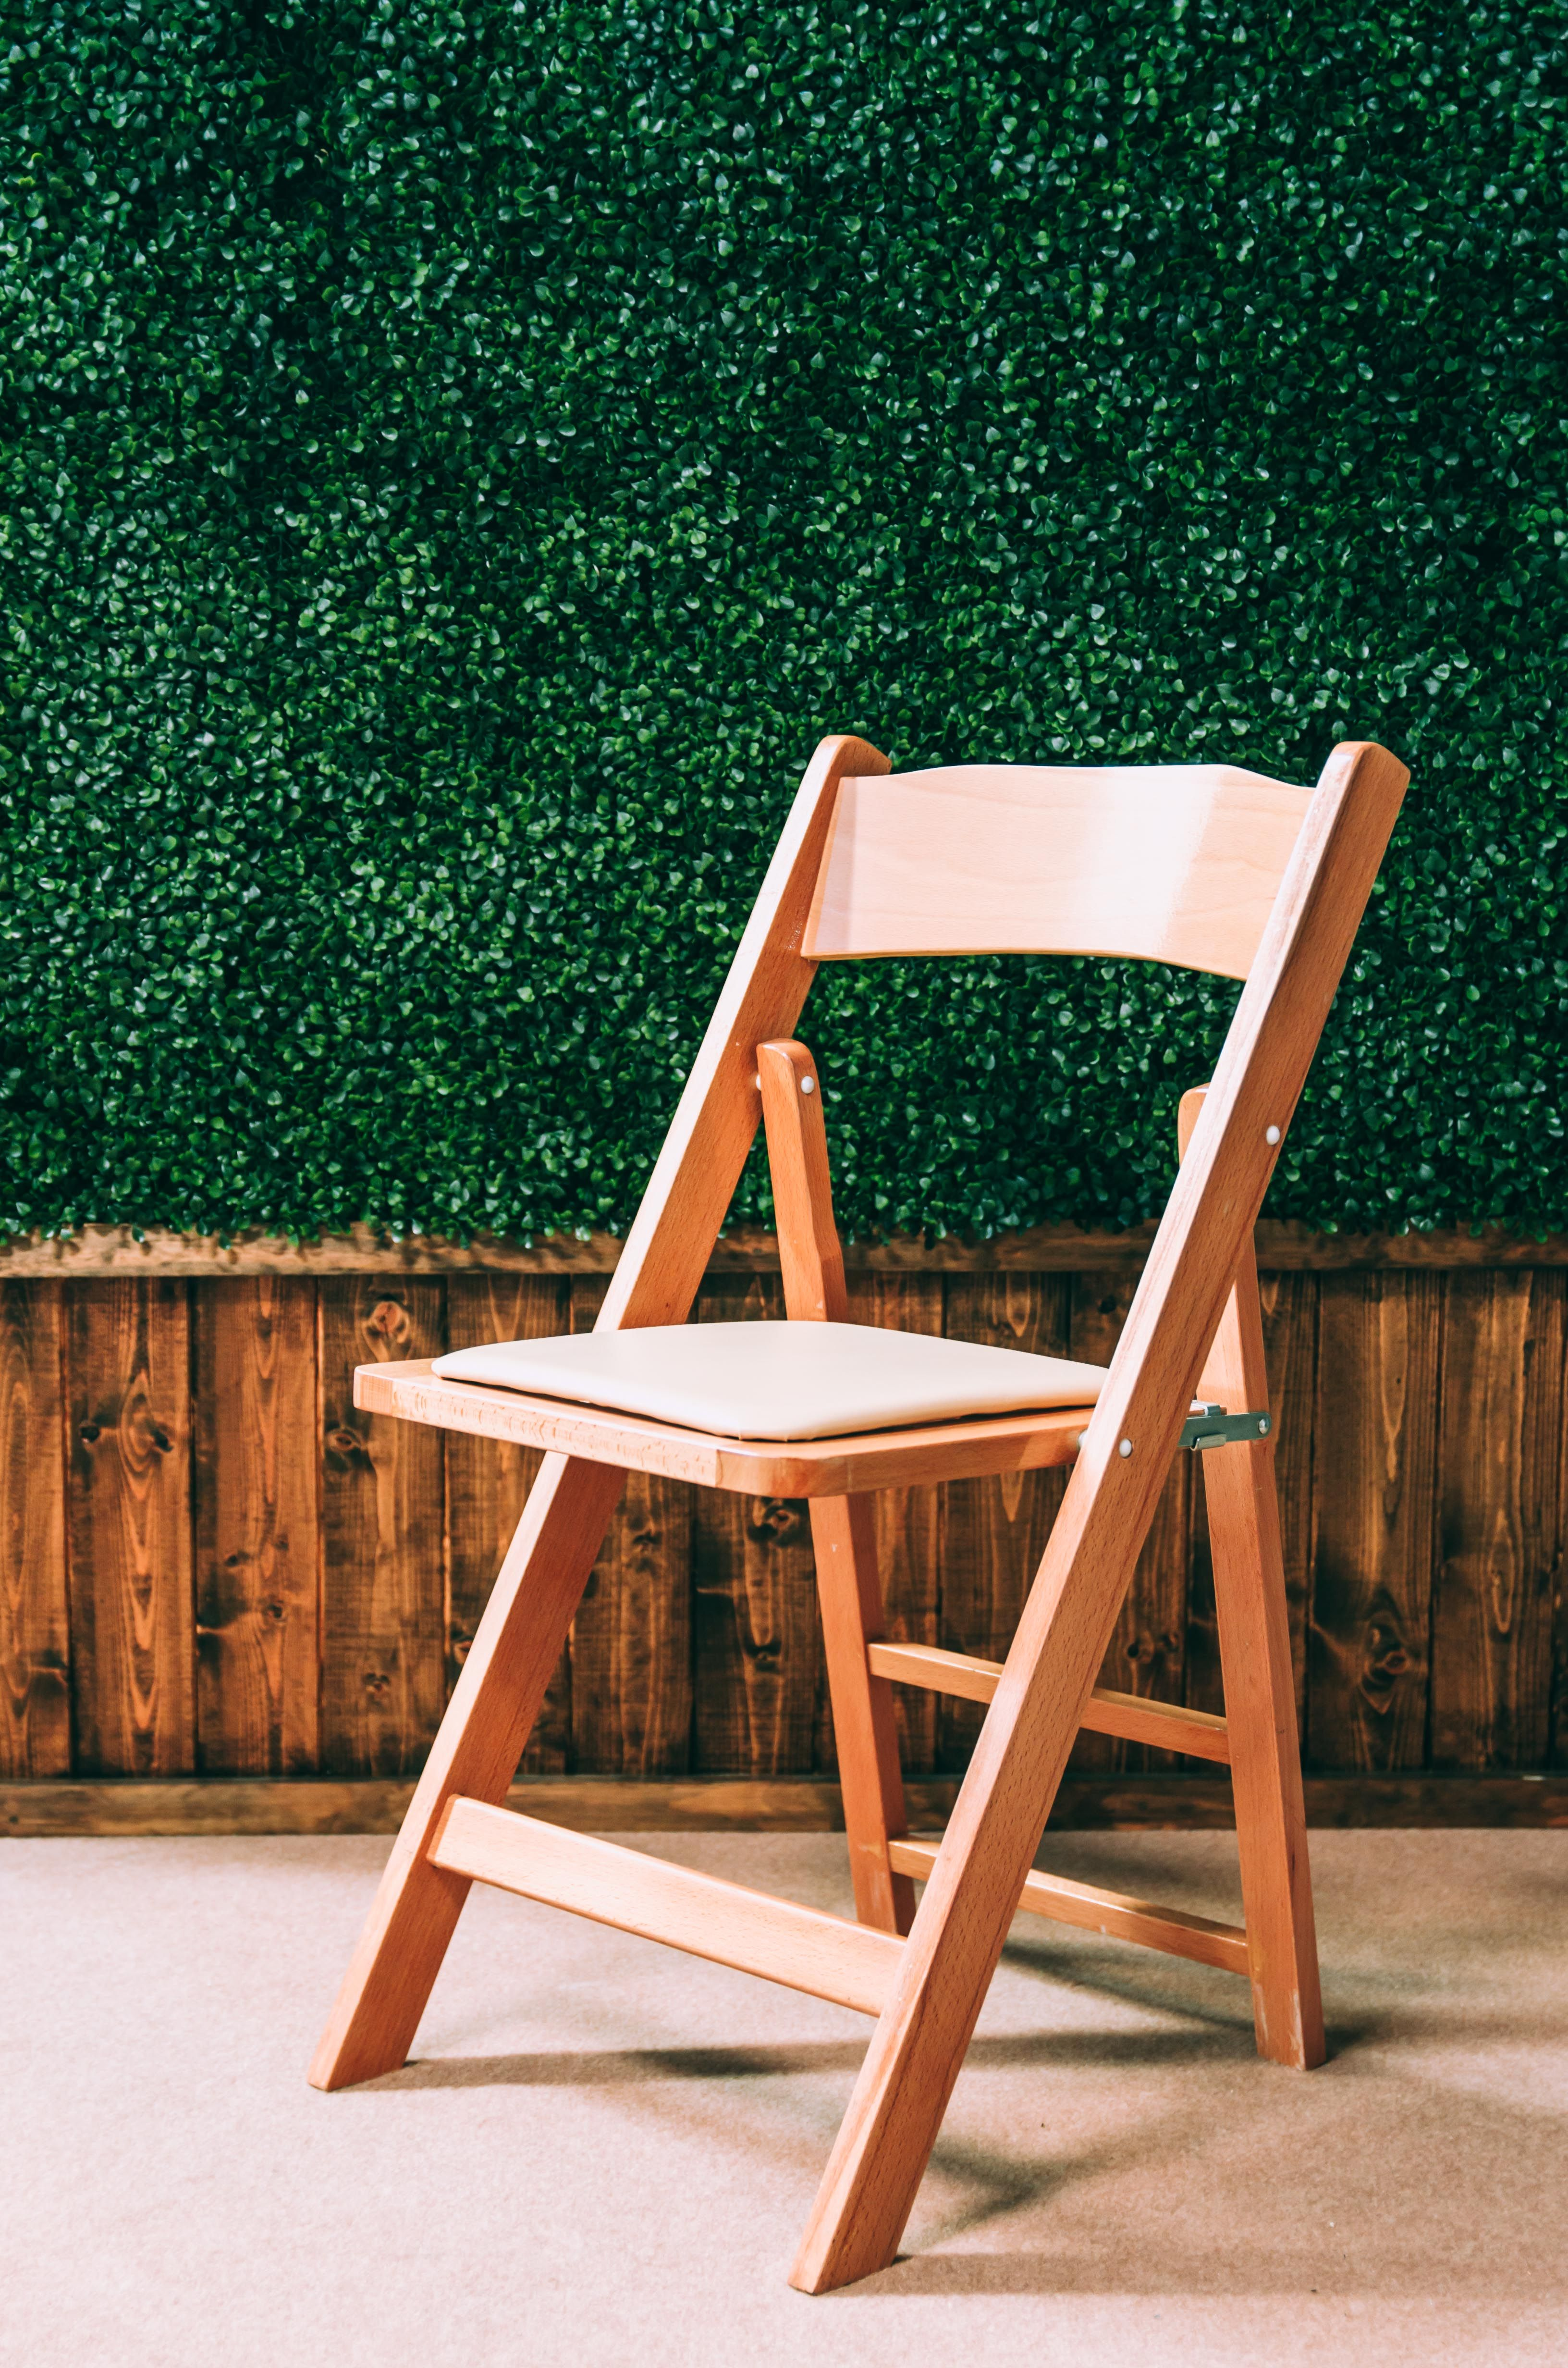 Terrific Wood Folding Chairs With Padded Seat Beautiful And Versatile Download Free Architecture Designs Itiscsunscenecom